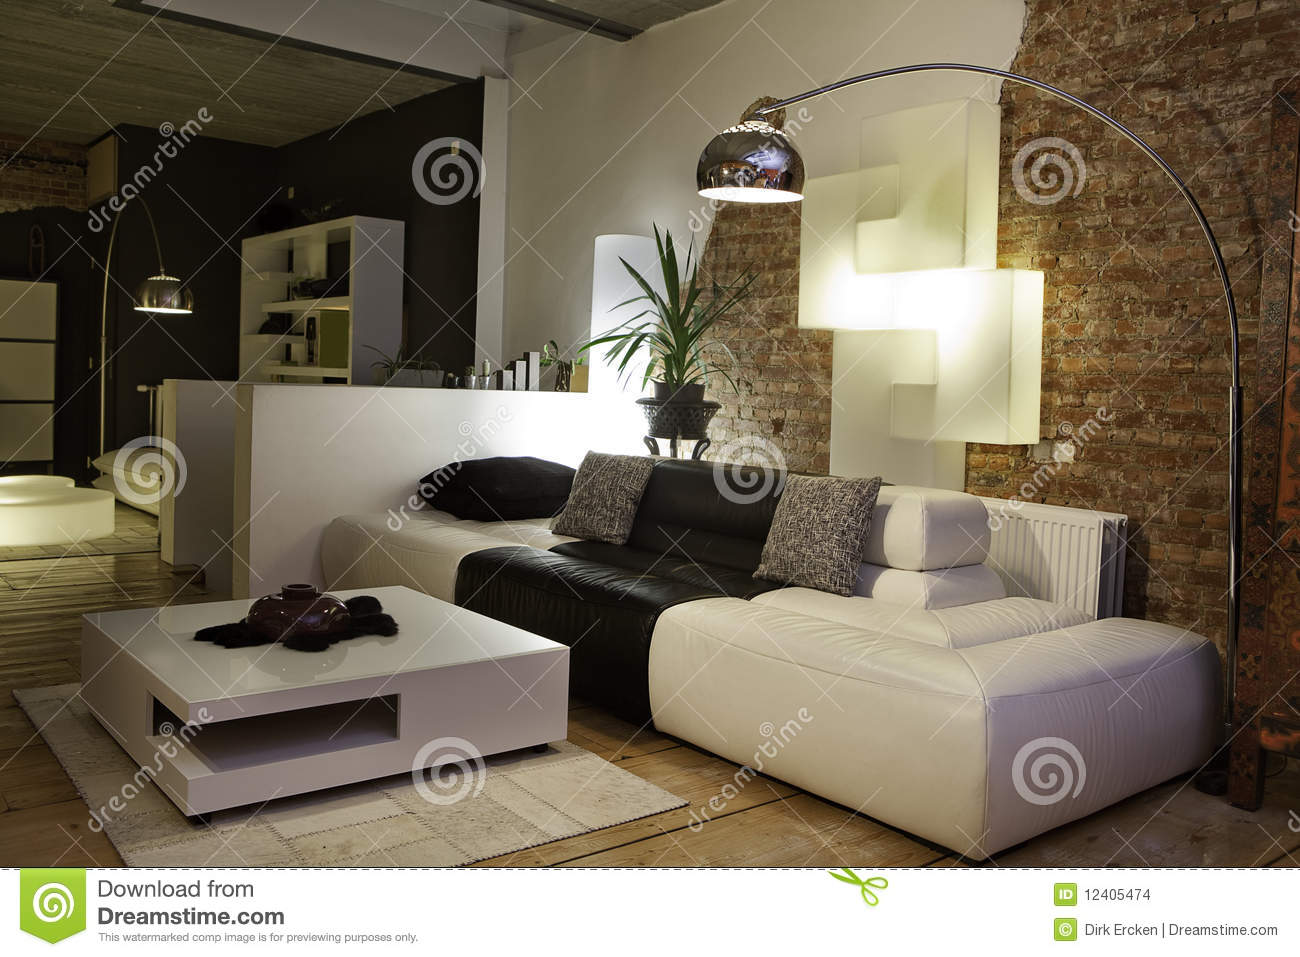 Brilliant Modern Living Room Sofa Couch Design Interior Stock Photo Gmtry Best Dining Table And Chair Ideas Images Gmtryco